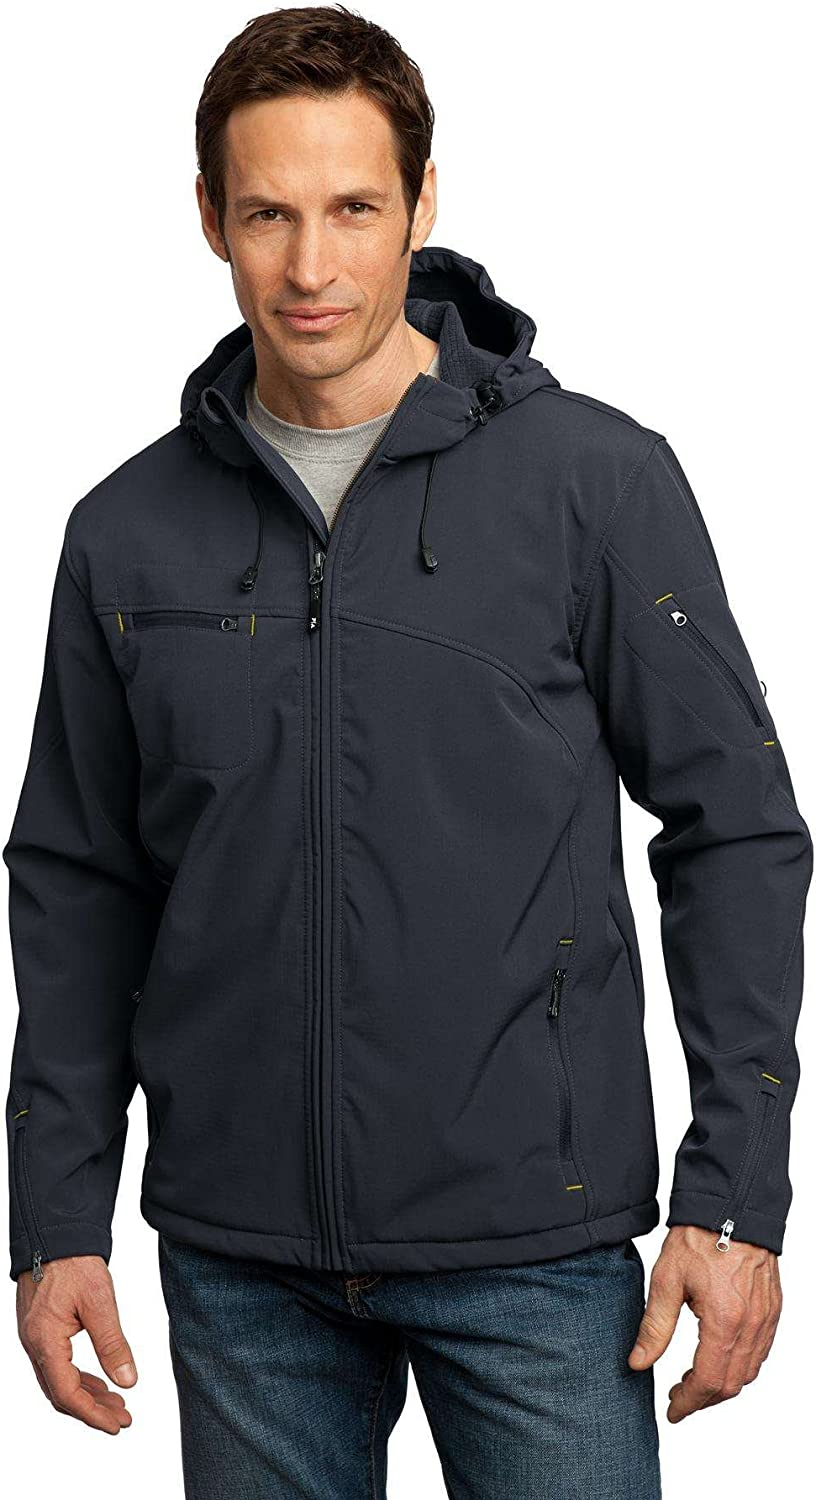 Port Authority - Textured Hooded Soft Shell Jacket. J706 - Charcoal/Lemon Yellow_M